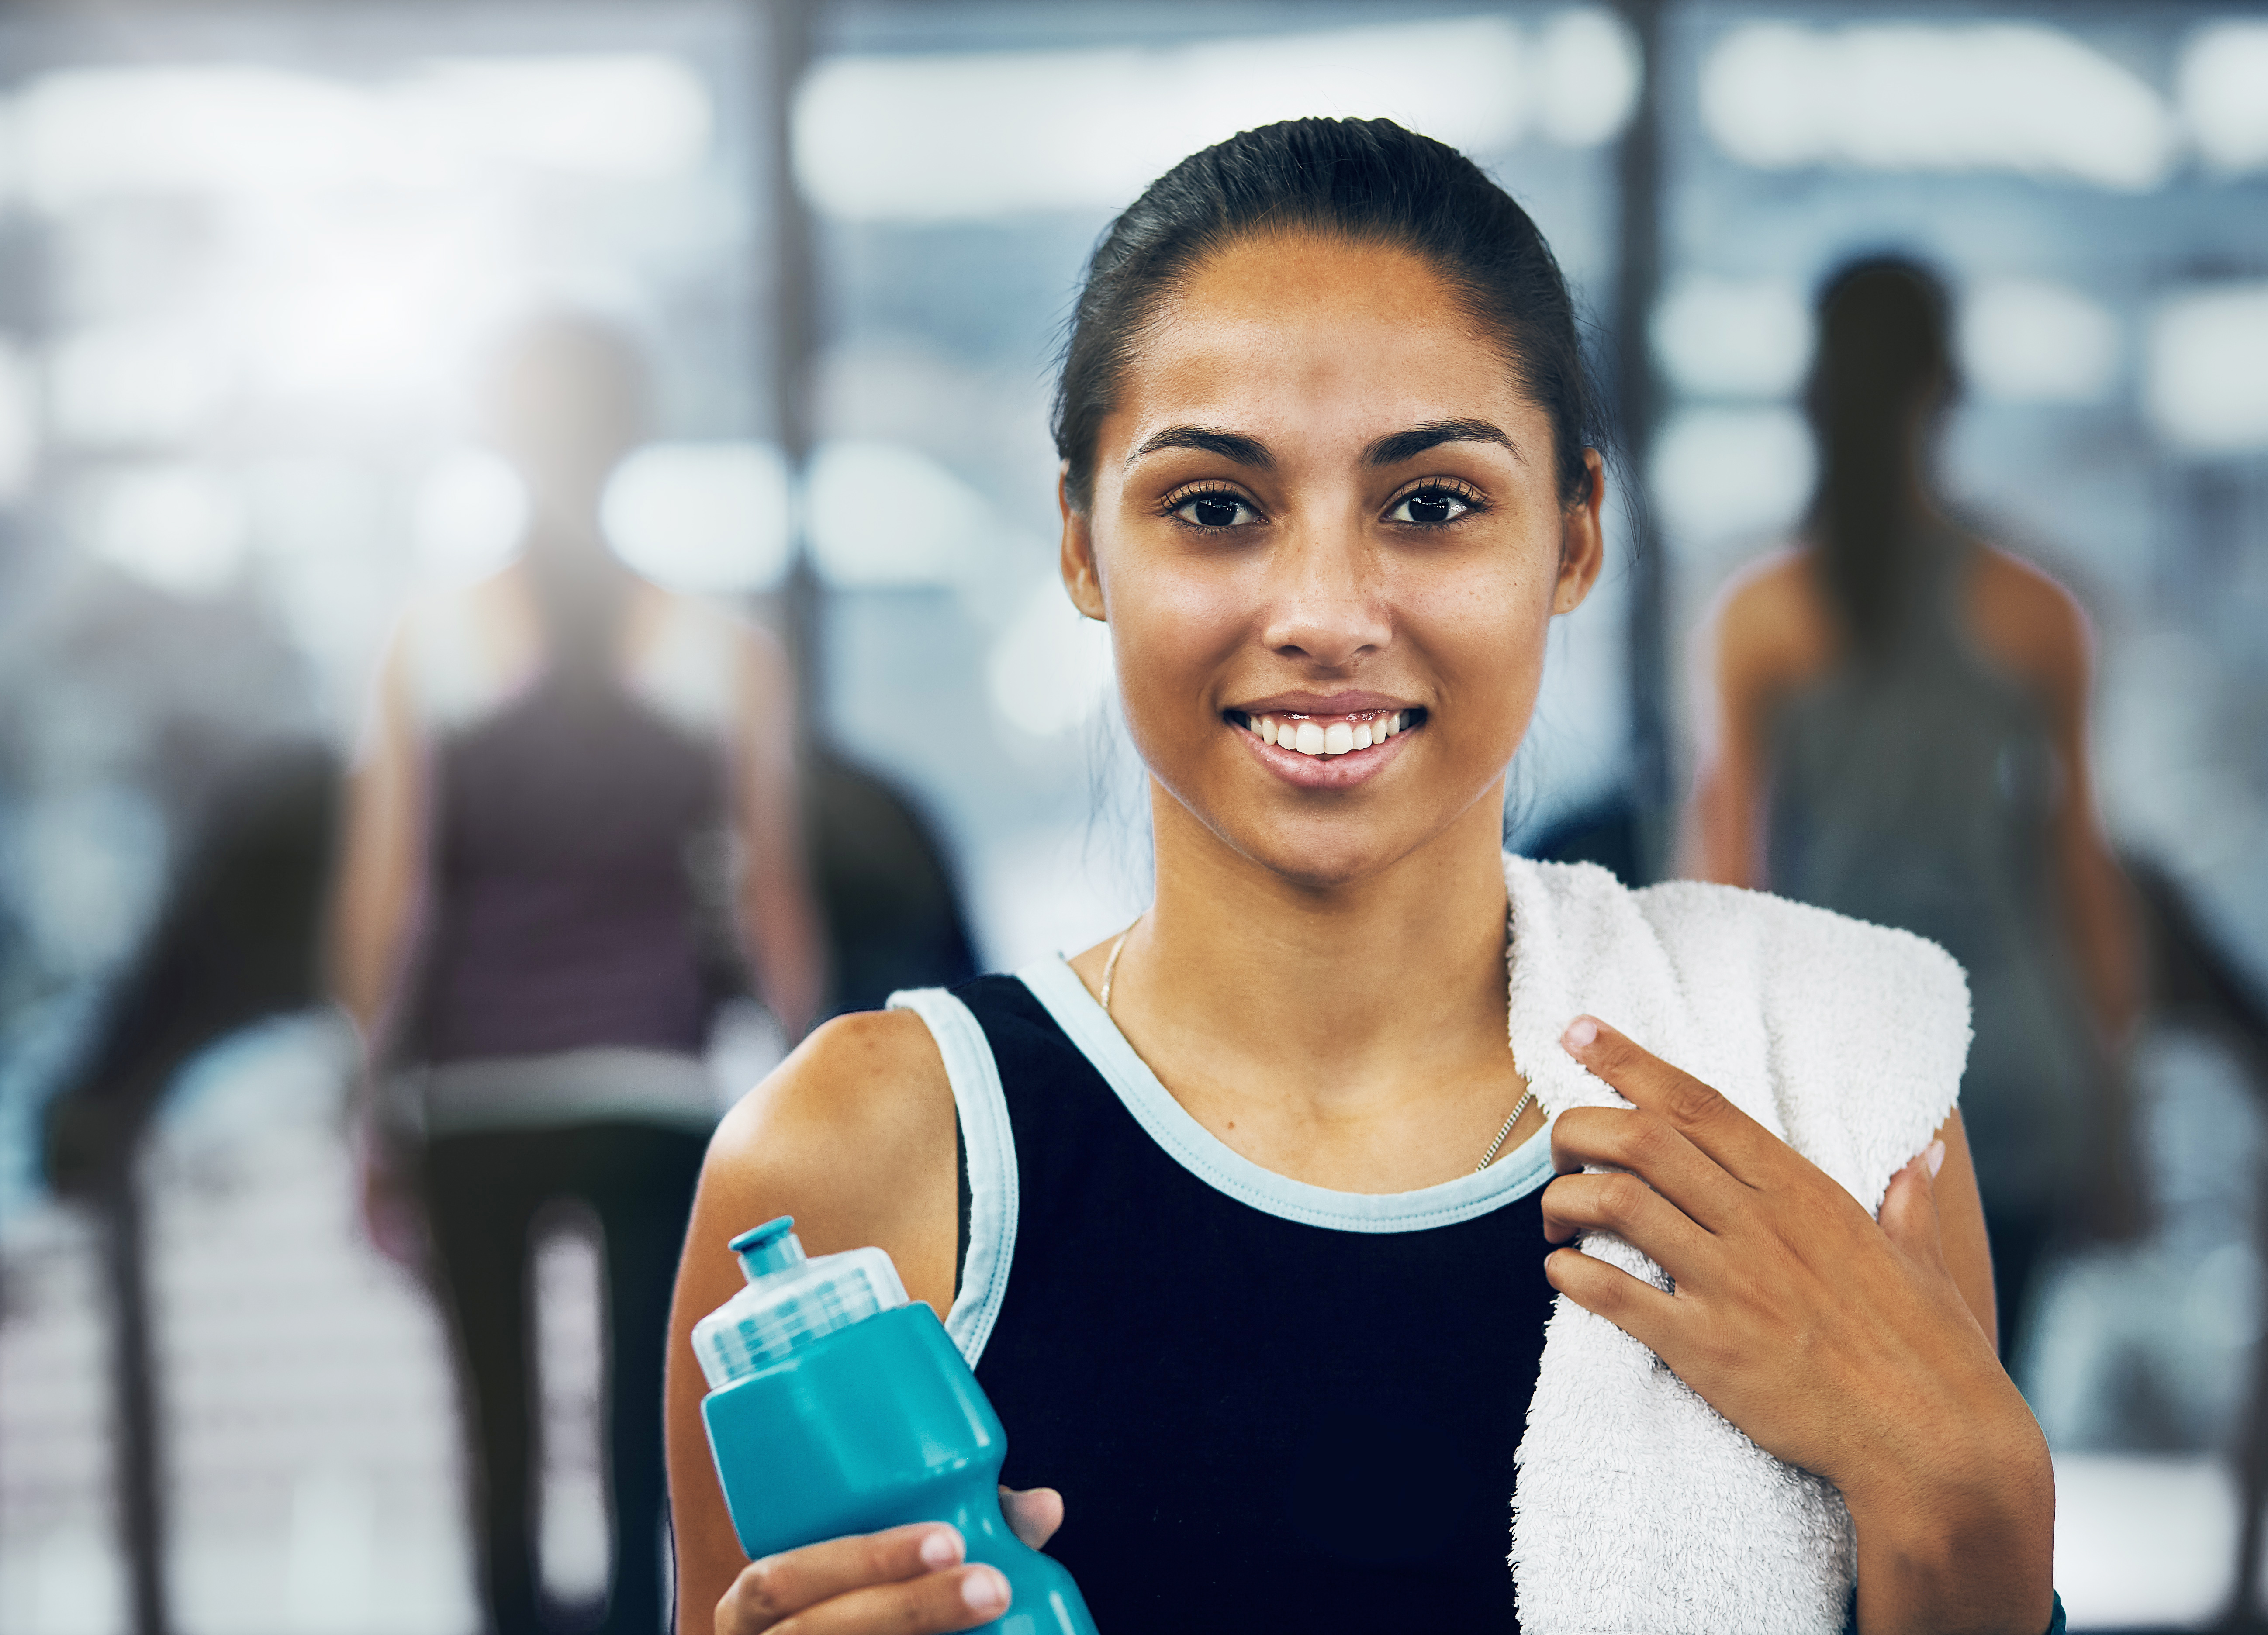 Beautiful young woman smiling after exercising at gym